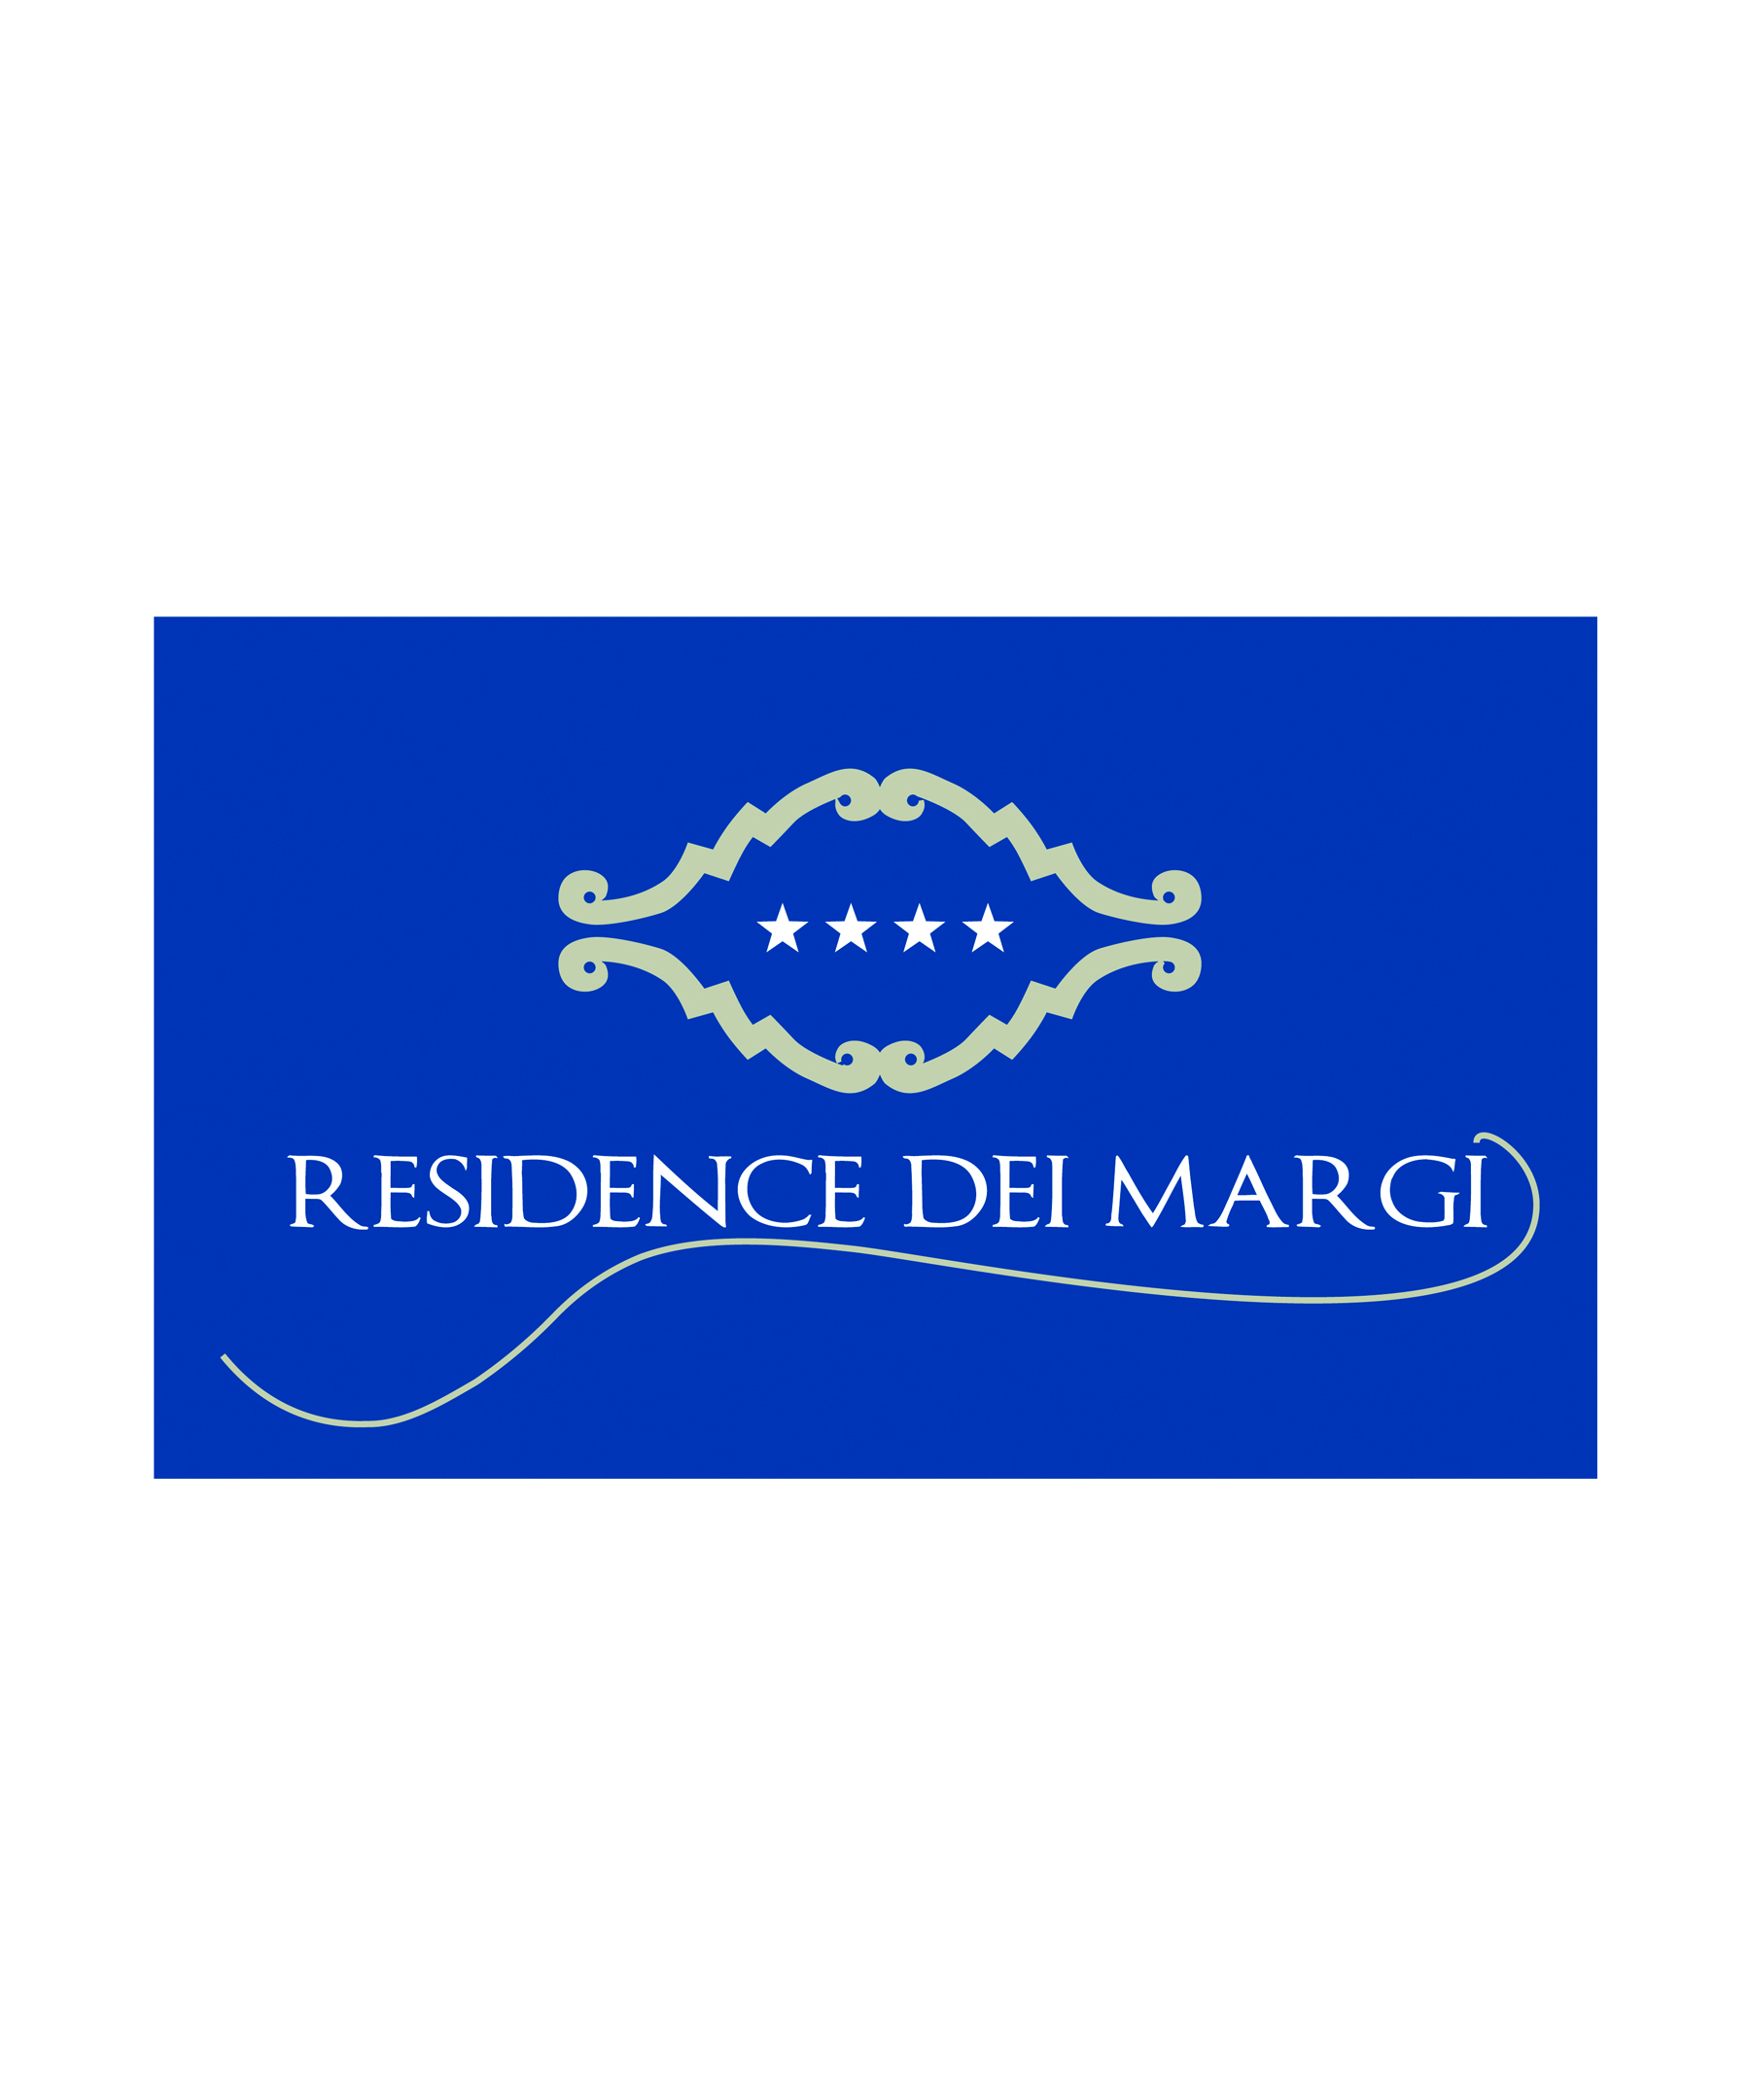 residence bronze sito